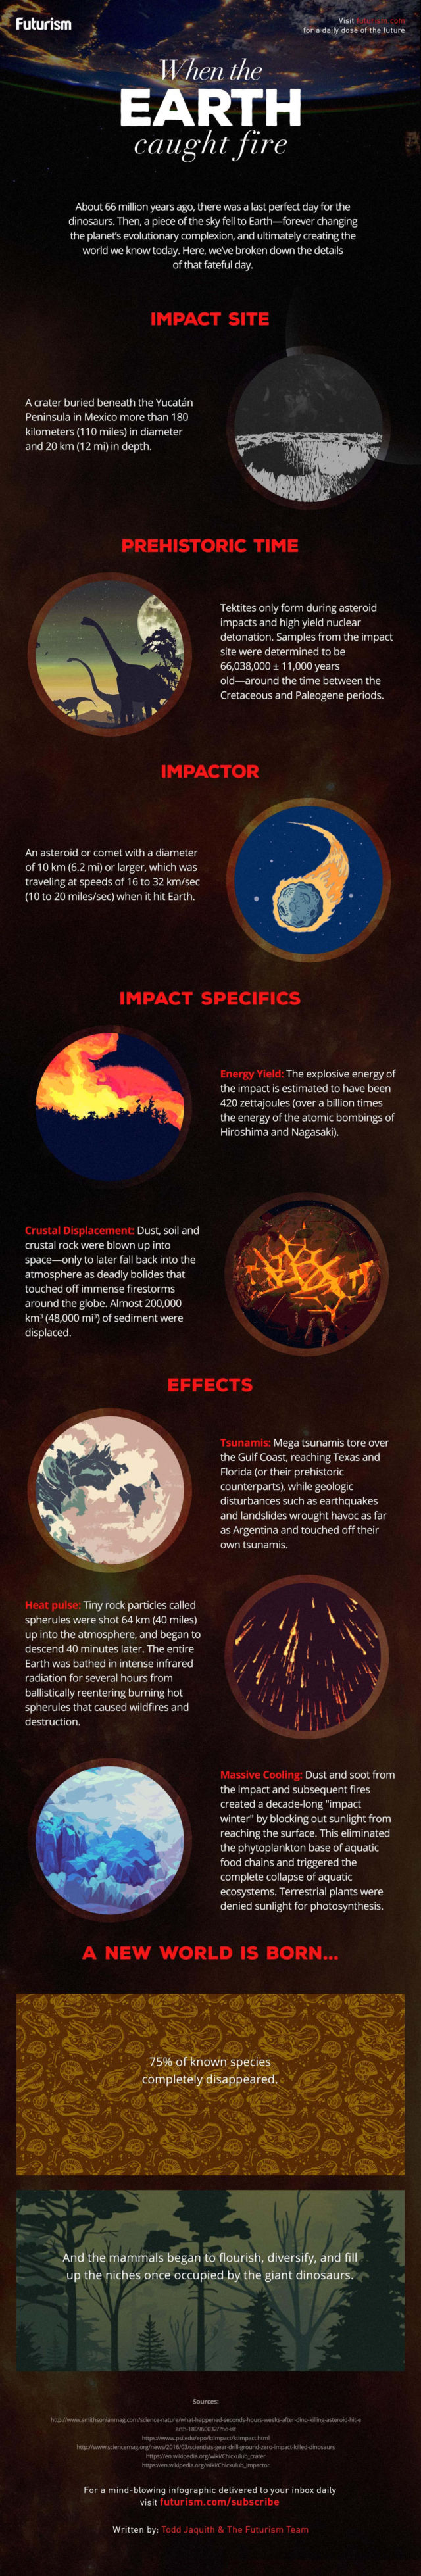 When the Earth Caught Fire infographic